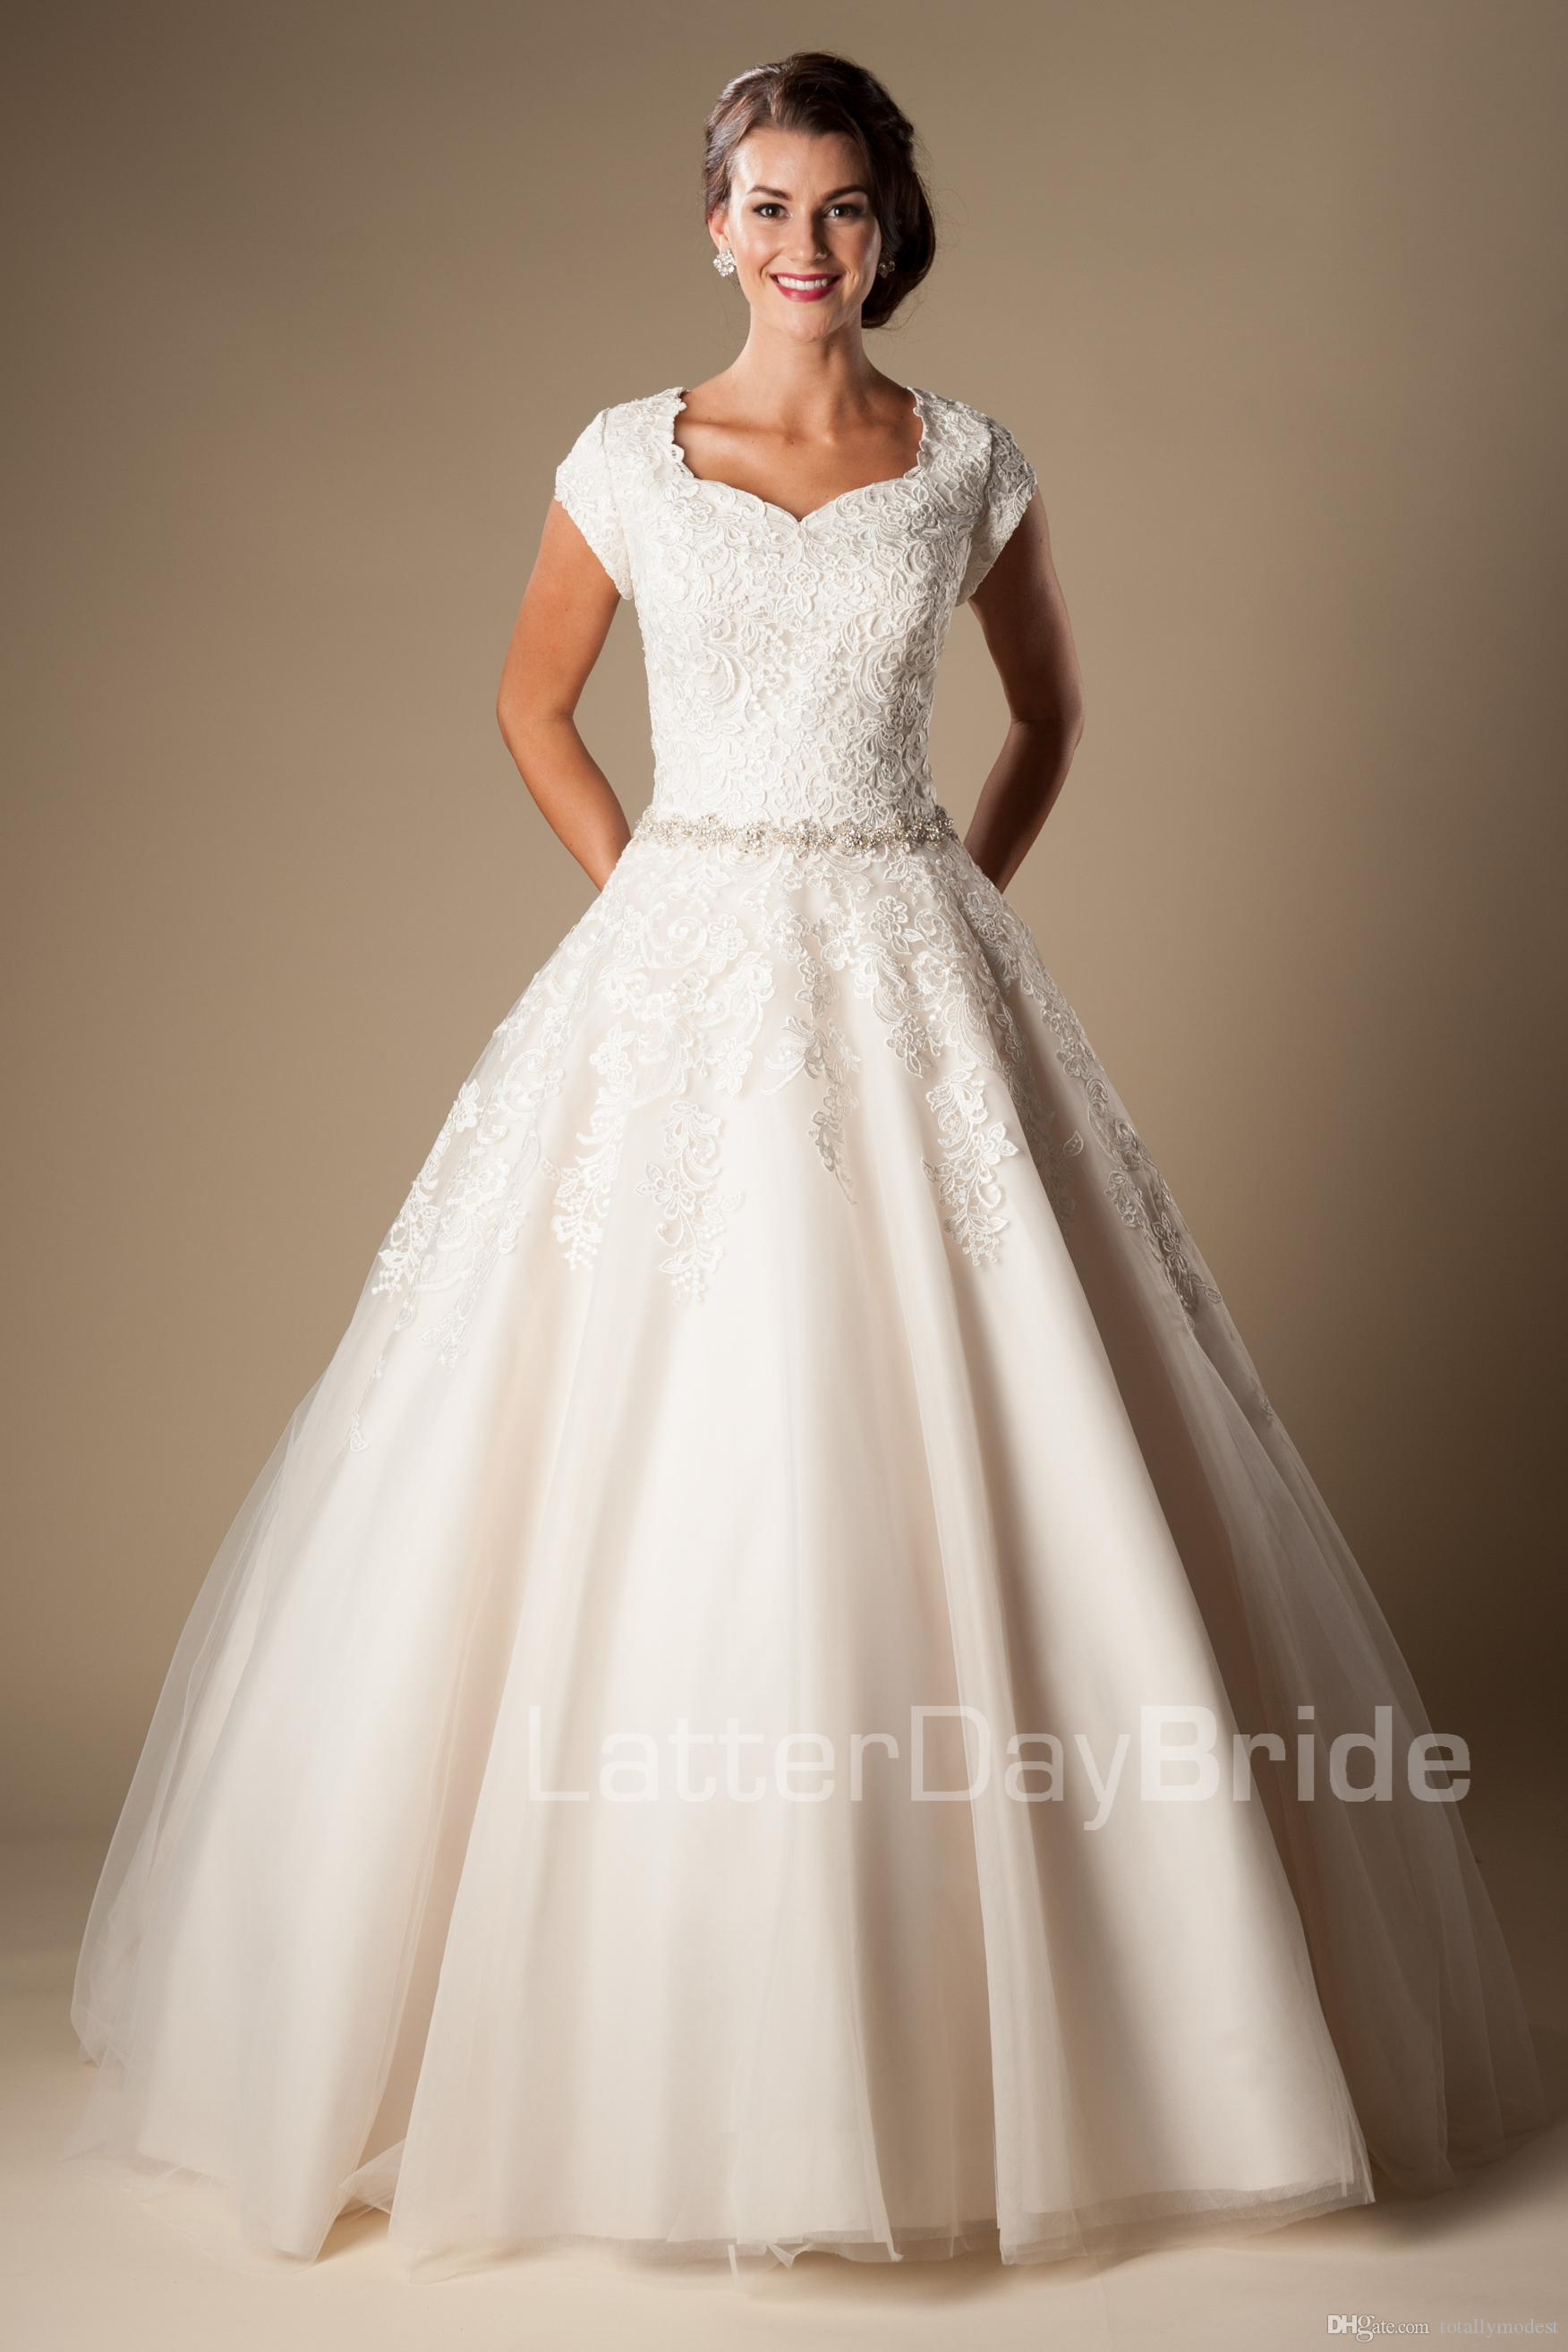 Ivory Lace Tulle Ball Gown Modest Wedding Dresses Cap Sleeves 2019 Short Princess Bridal Gowns Beaded Belt Button Back Affordable: Black Ball Gown Princess Wedding Dresses At Reisefeber.org